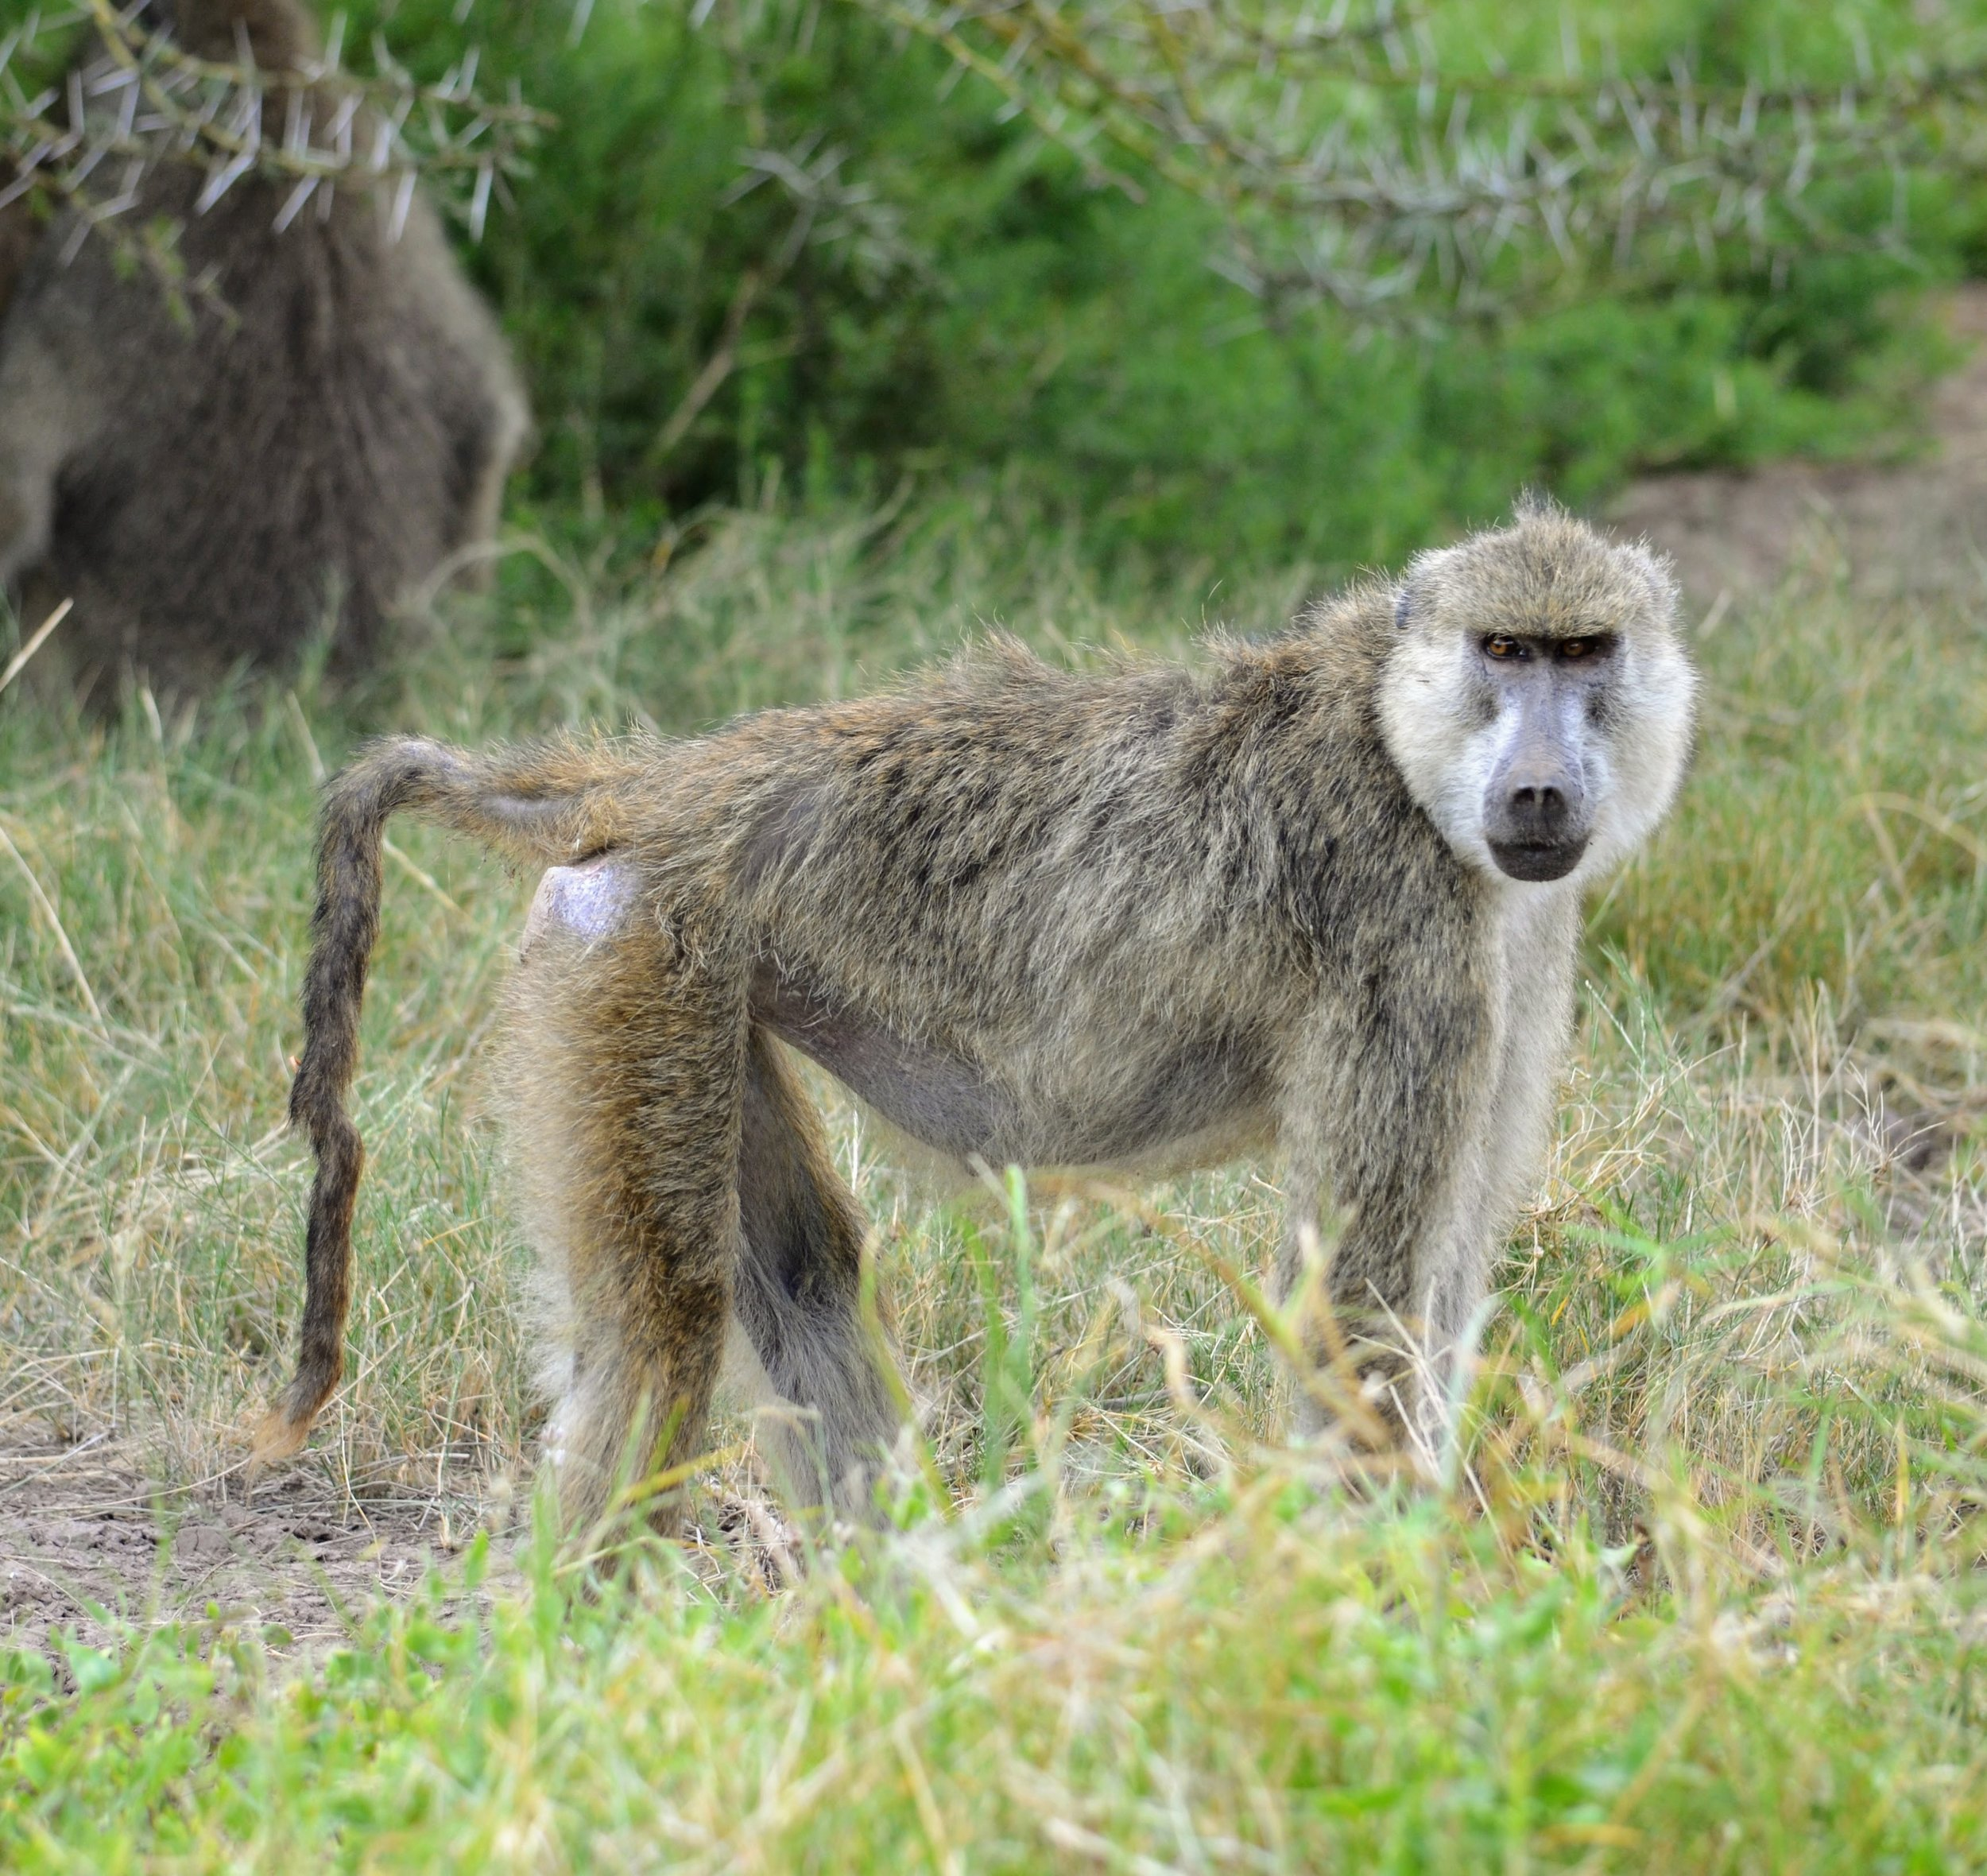 A very old female baboon standing on the savannah.